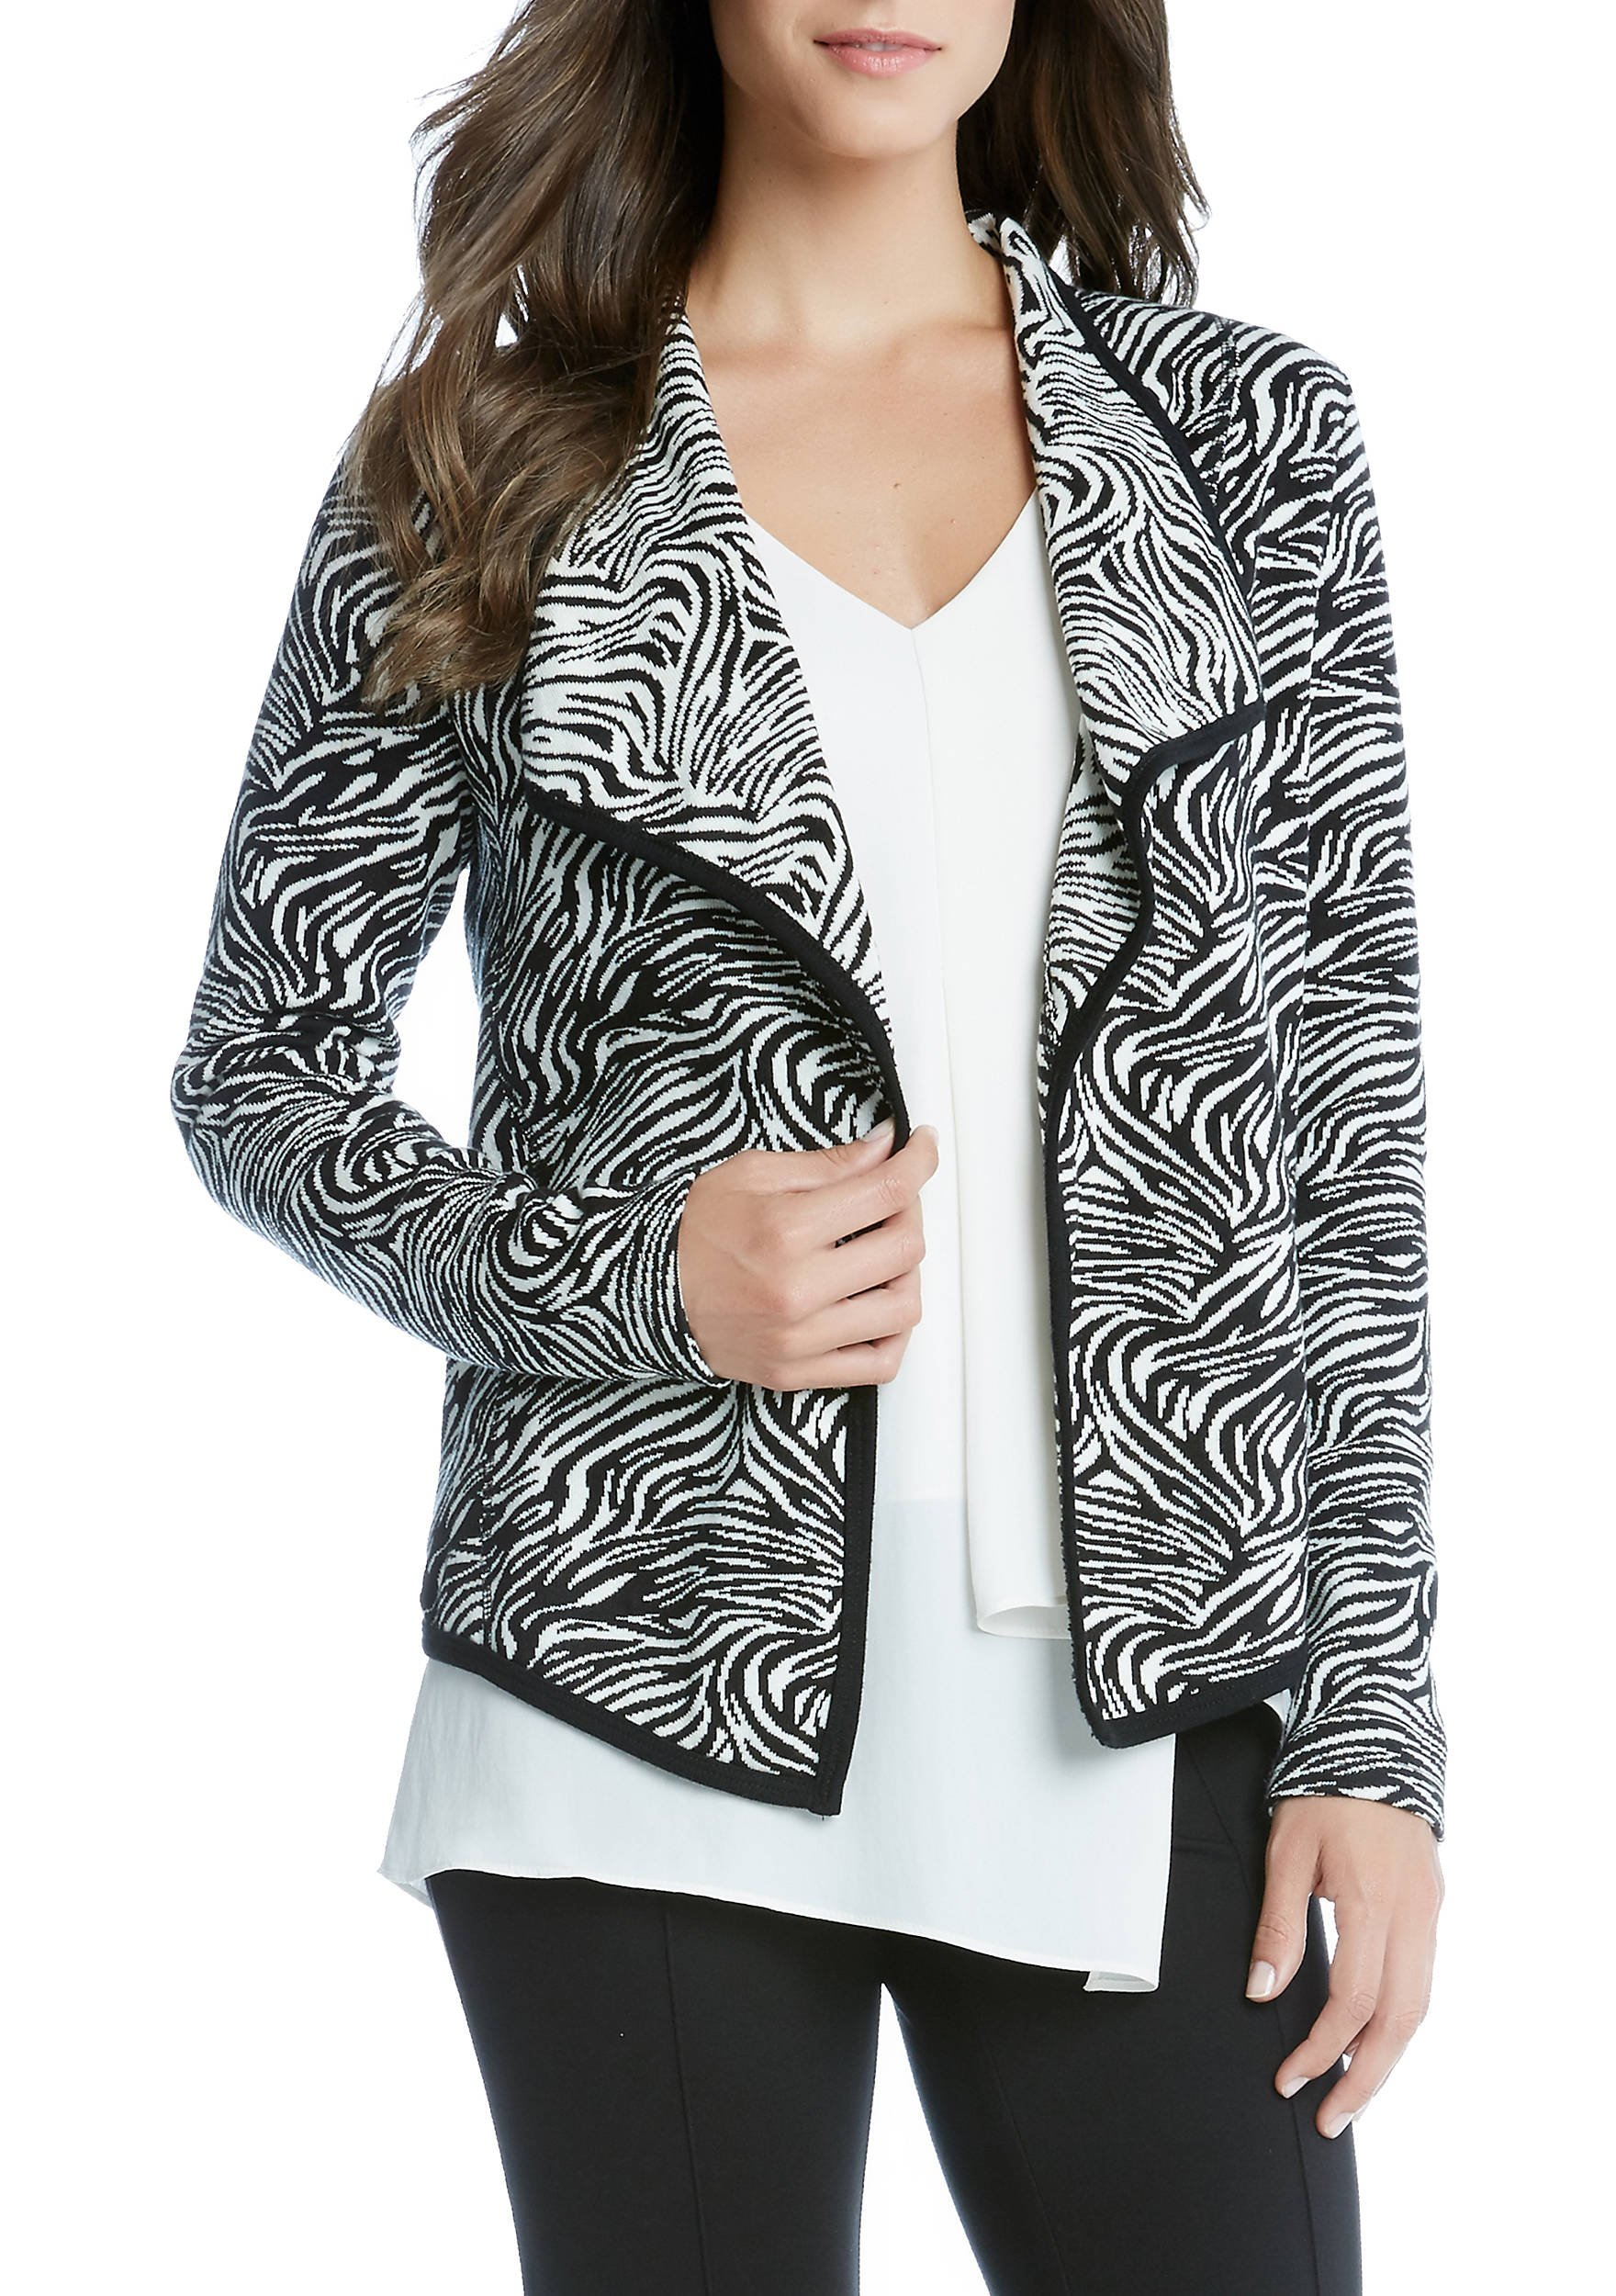 Karen Kane Women's Zebra Print Cardigan (Medium, Black)